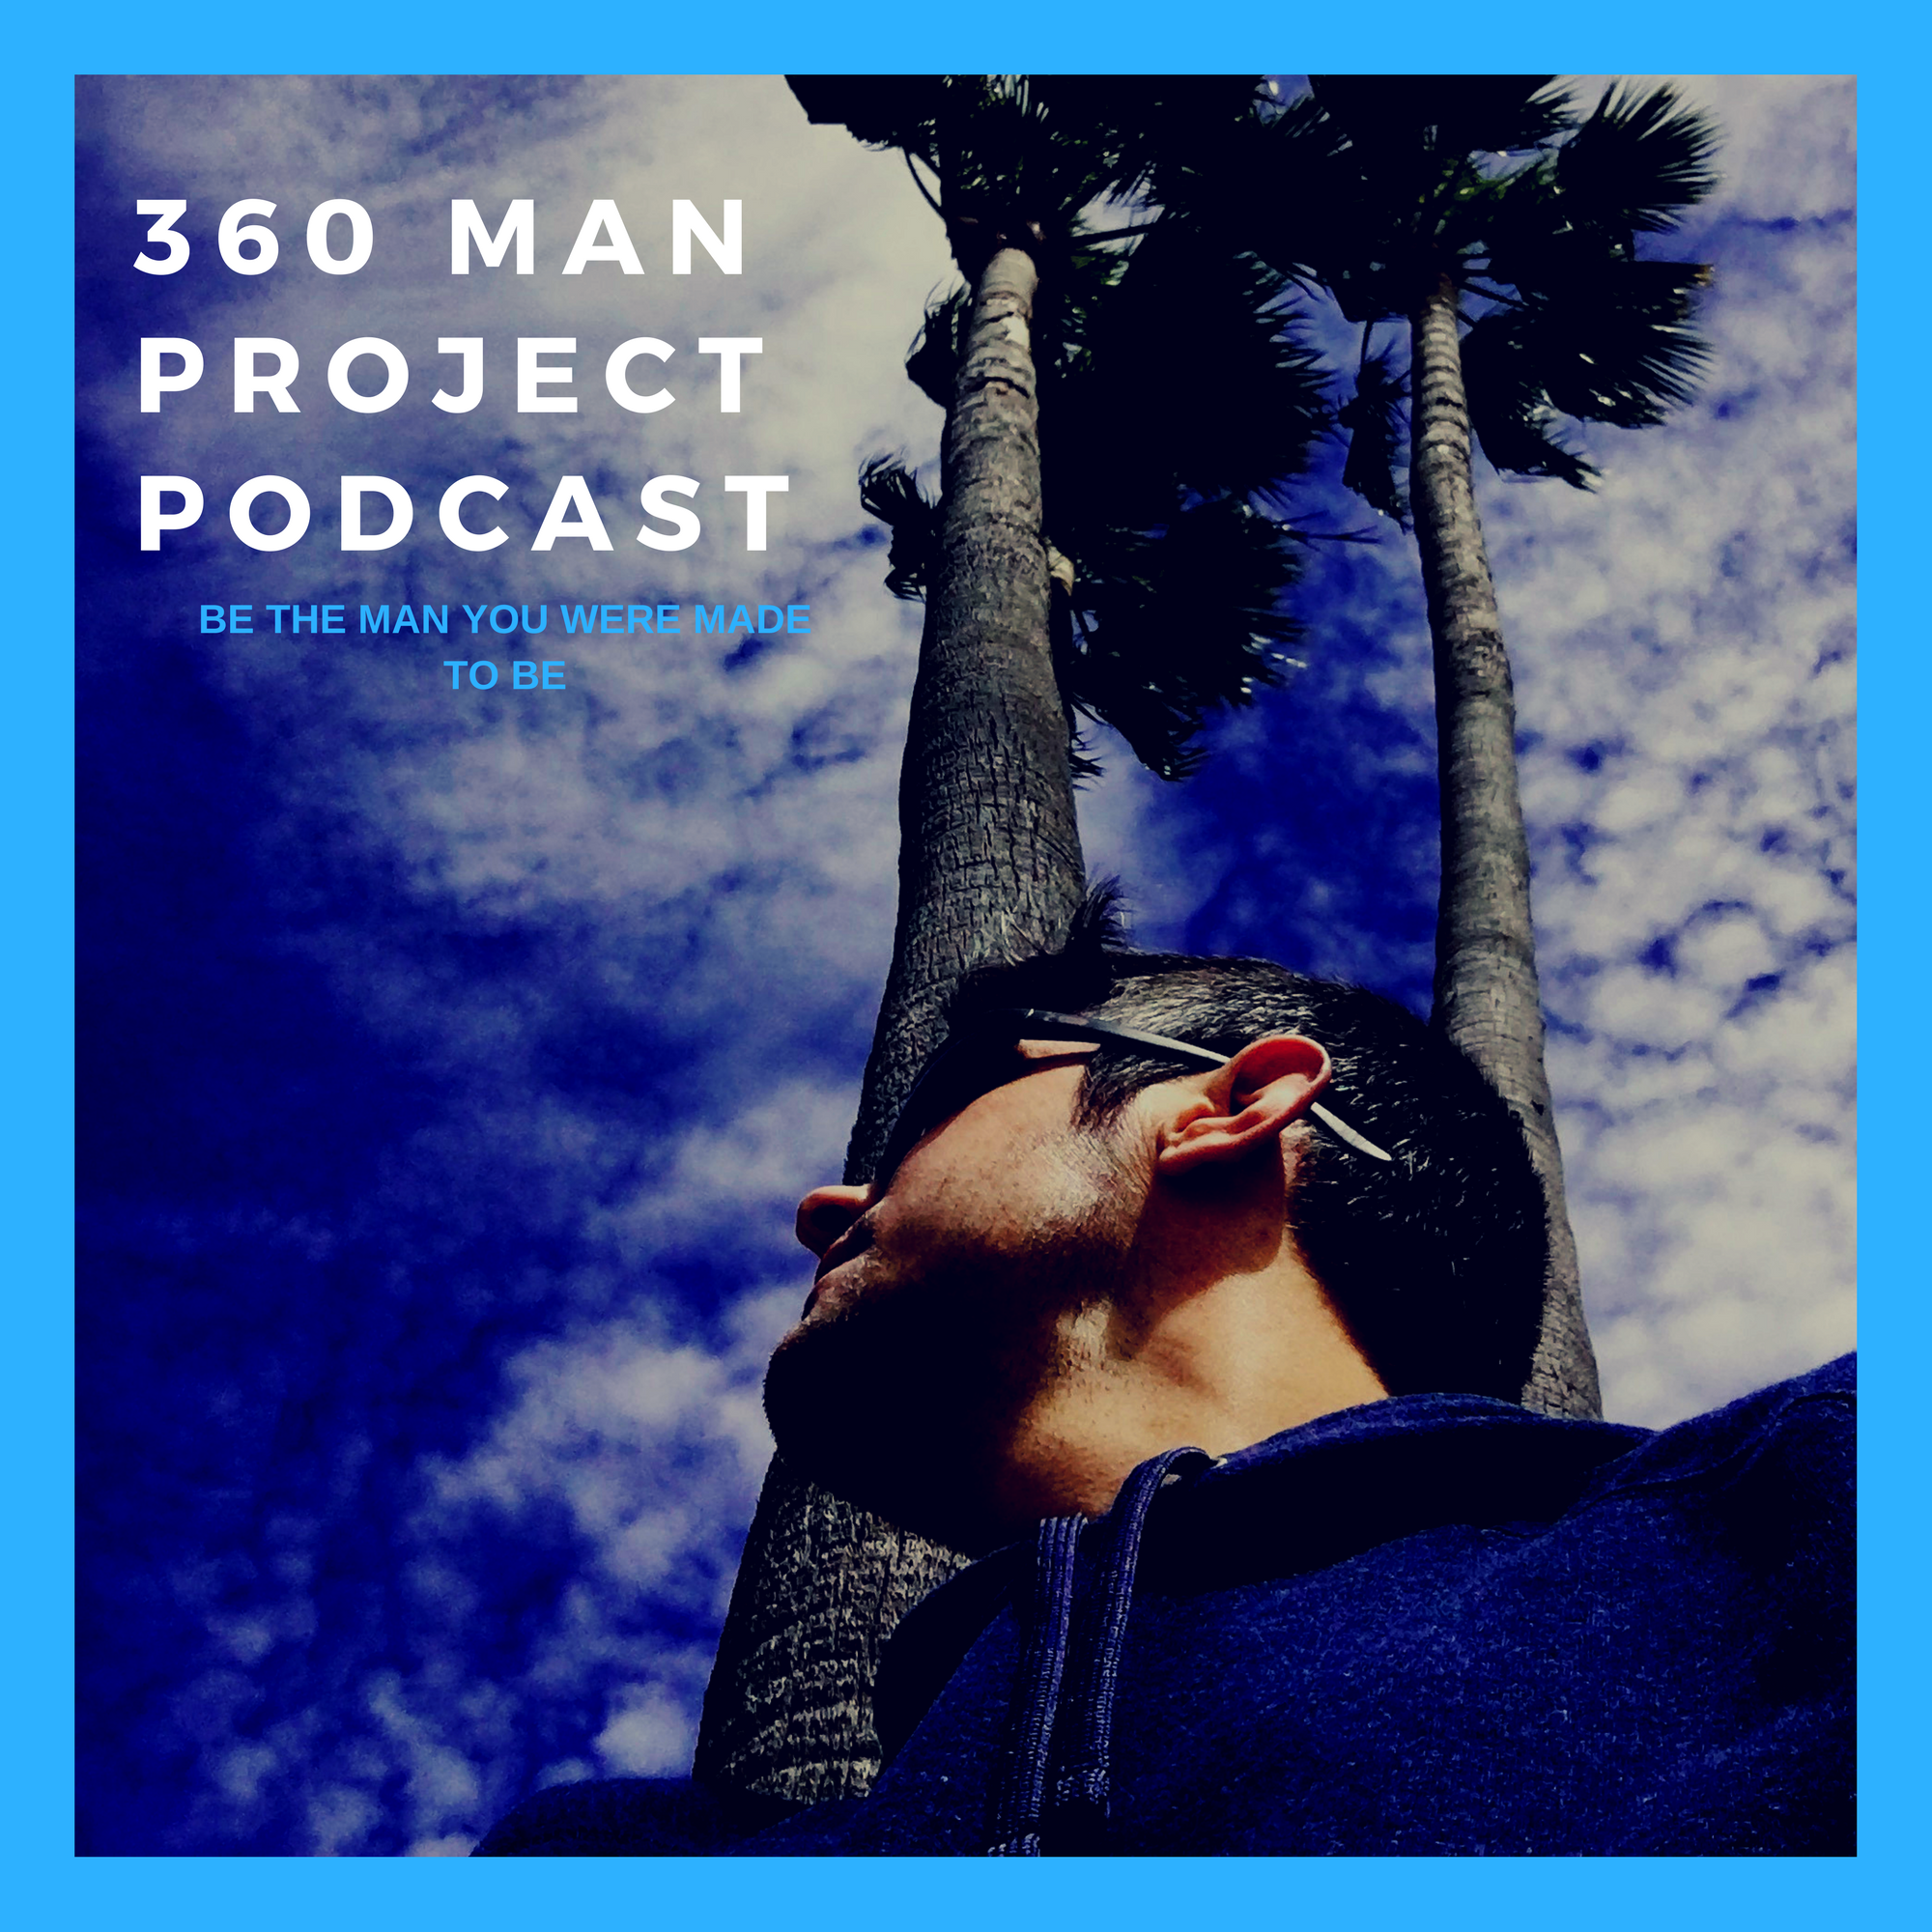 360 Man Project podcast (2).png